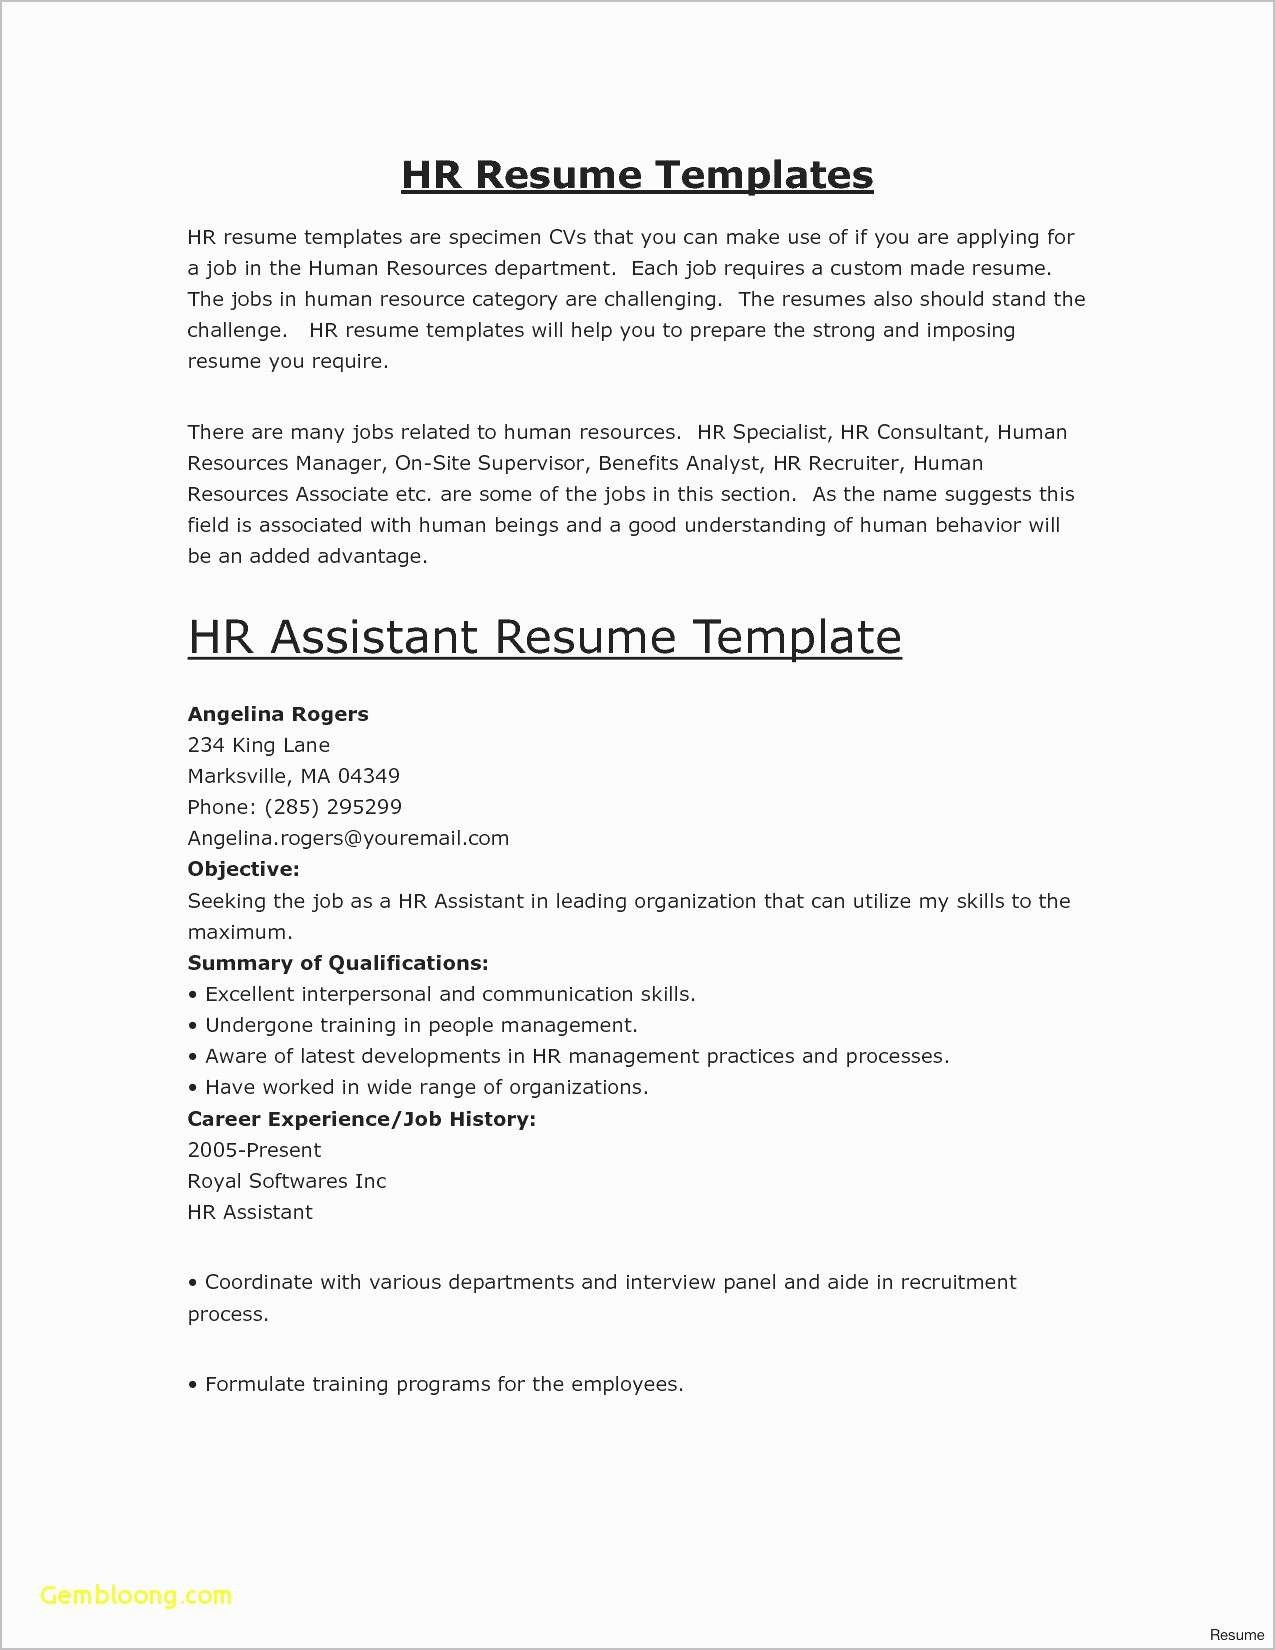 Call Center Trainer Resume - Horse Trainer Resume Refrence Dog Groomer Resume Jaowebdesign